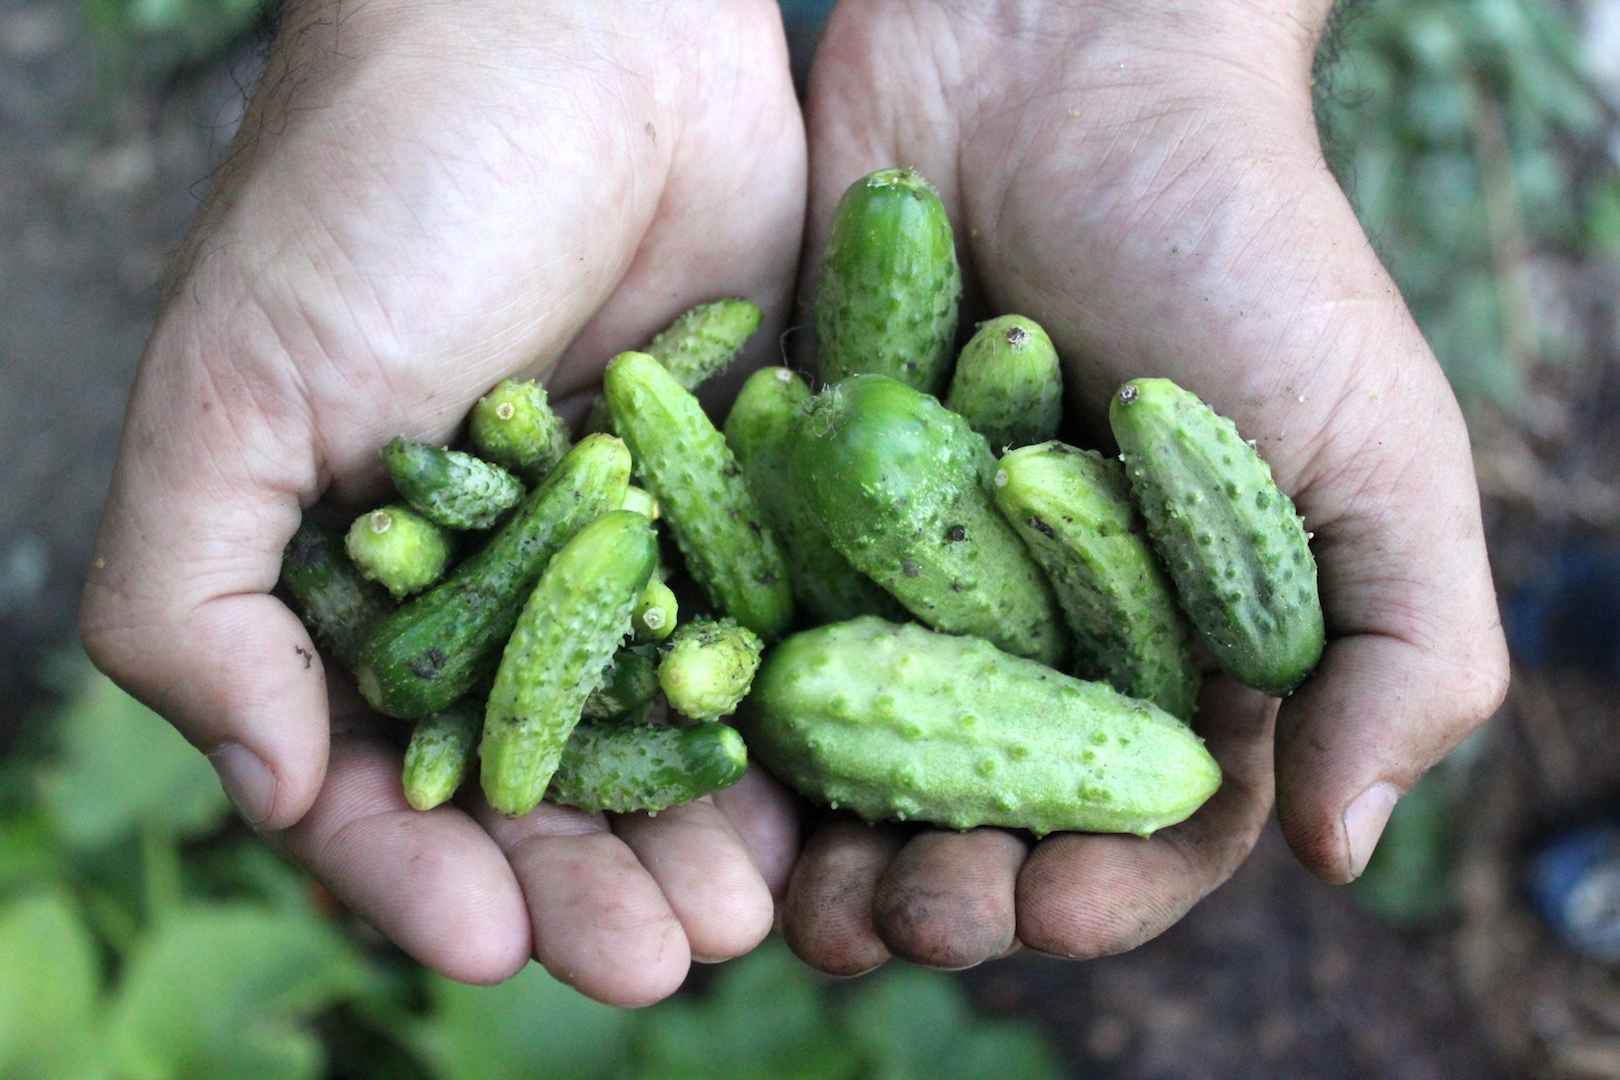 Harvesting Cucumbers for Gherkins